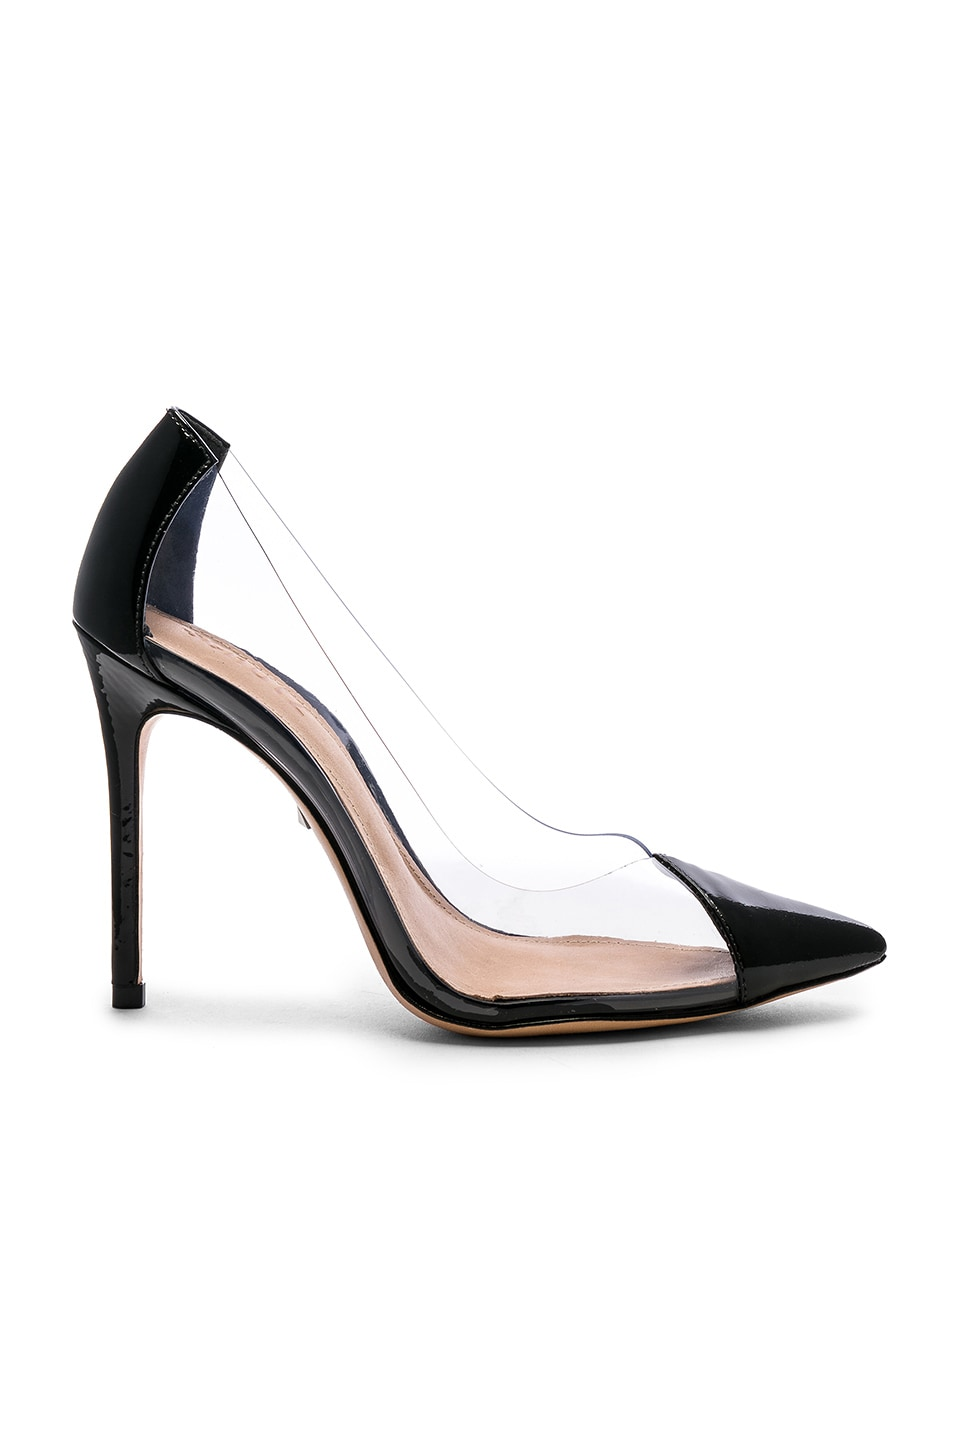 Schutz Cendi Heel in Transparente & Black